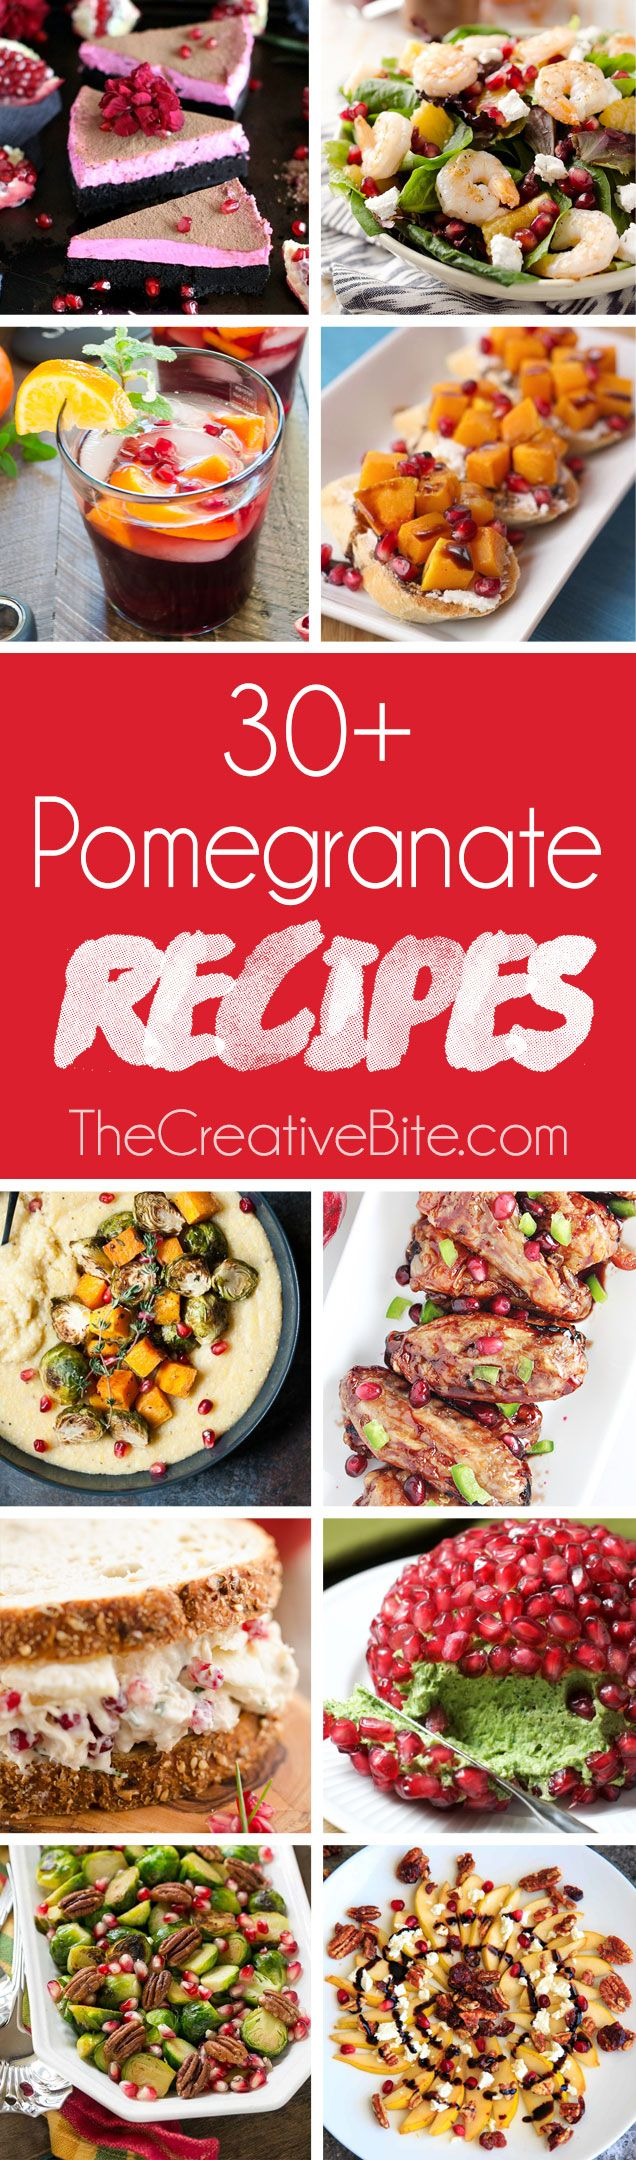 30+ Pomegranate Recipes are a great mix of appetizers, main dishes and desserts that all use this gem of a fruit for an elegant and delicious twist! #Pomegranate #Recipes